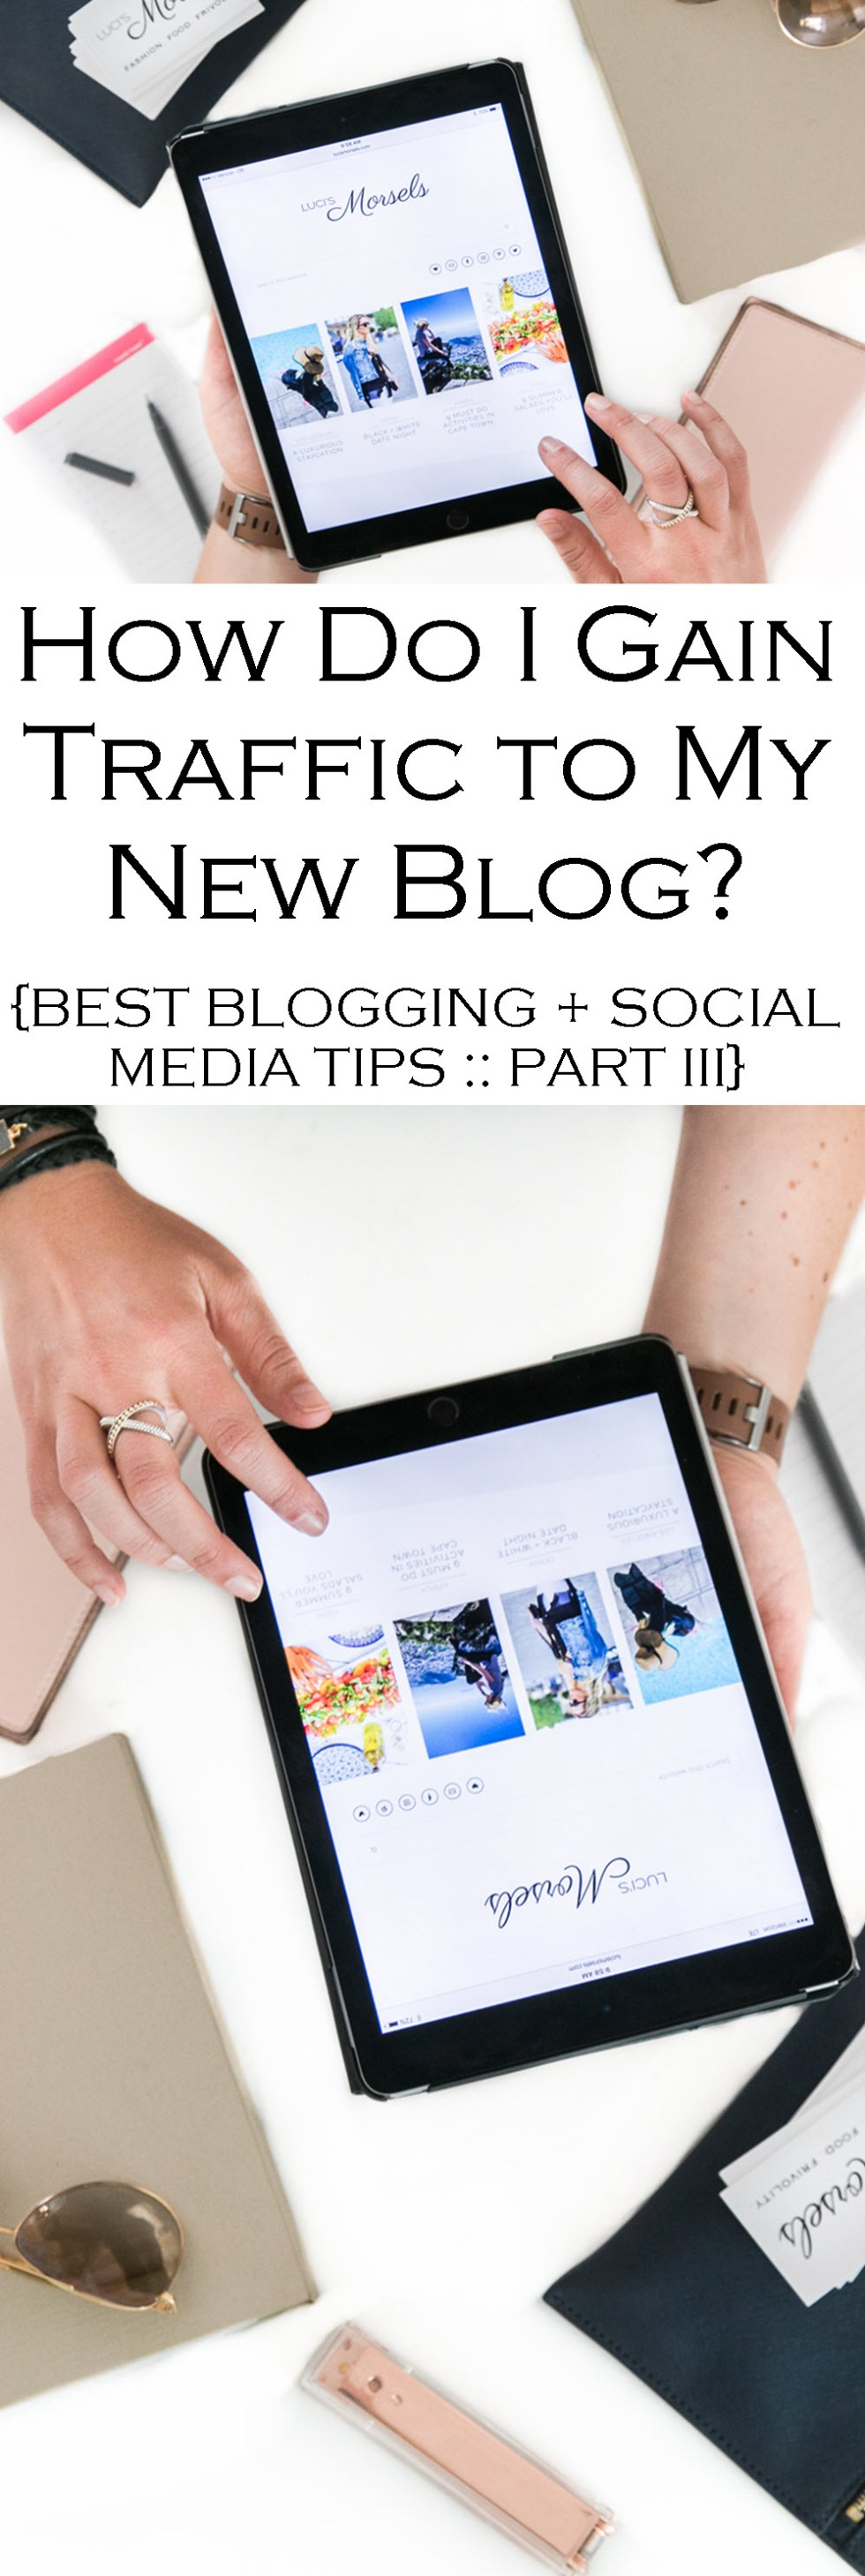 How to Get More Traffic to Your New Blog? Tips, tricks, and the basics to getting more people to visit your site. Best Blogging + Social Media Tips Series.